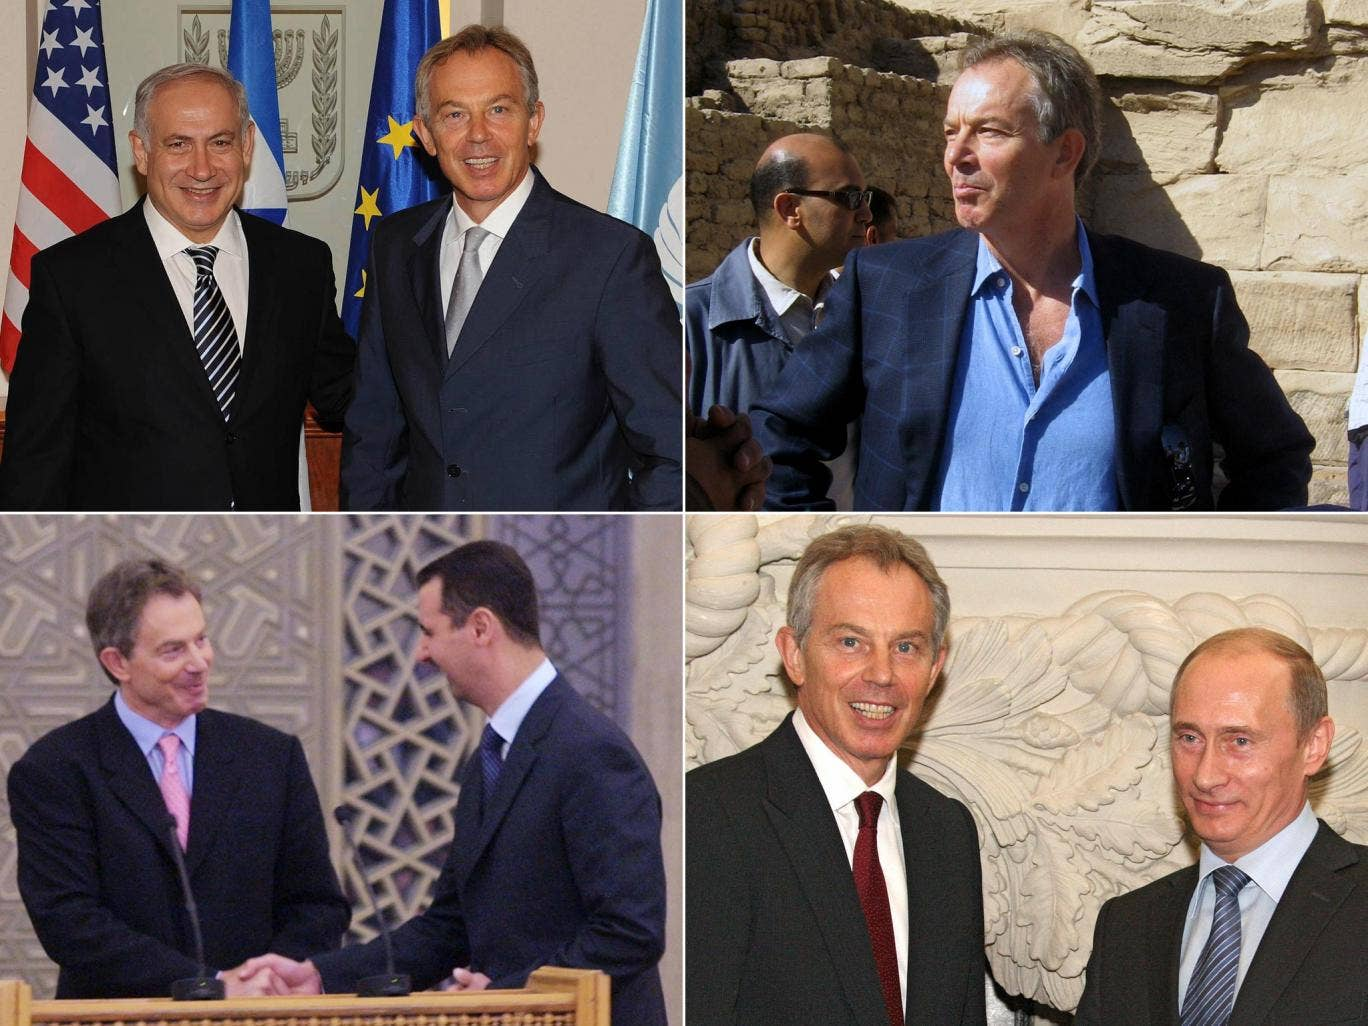 Clockwise from top left: Tony Blair with Benjamin Netanyahu in Jerusalem in 2009; at Karnak Temple in Luxor, Egypt in 2007; with Vladimir Putin in Moscow in 2008; with Bashar al-Assad in Damascus in 2001